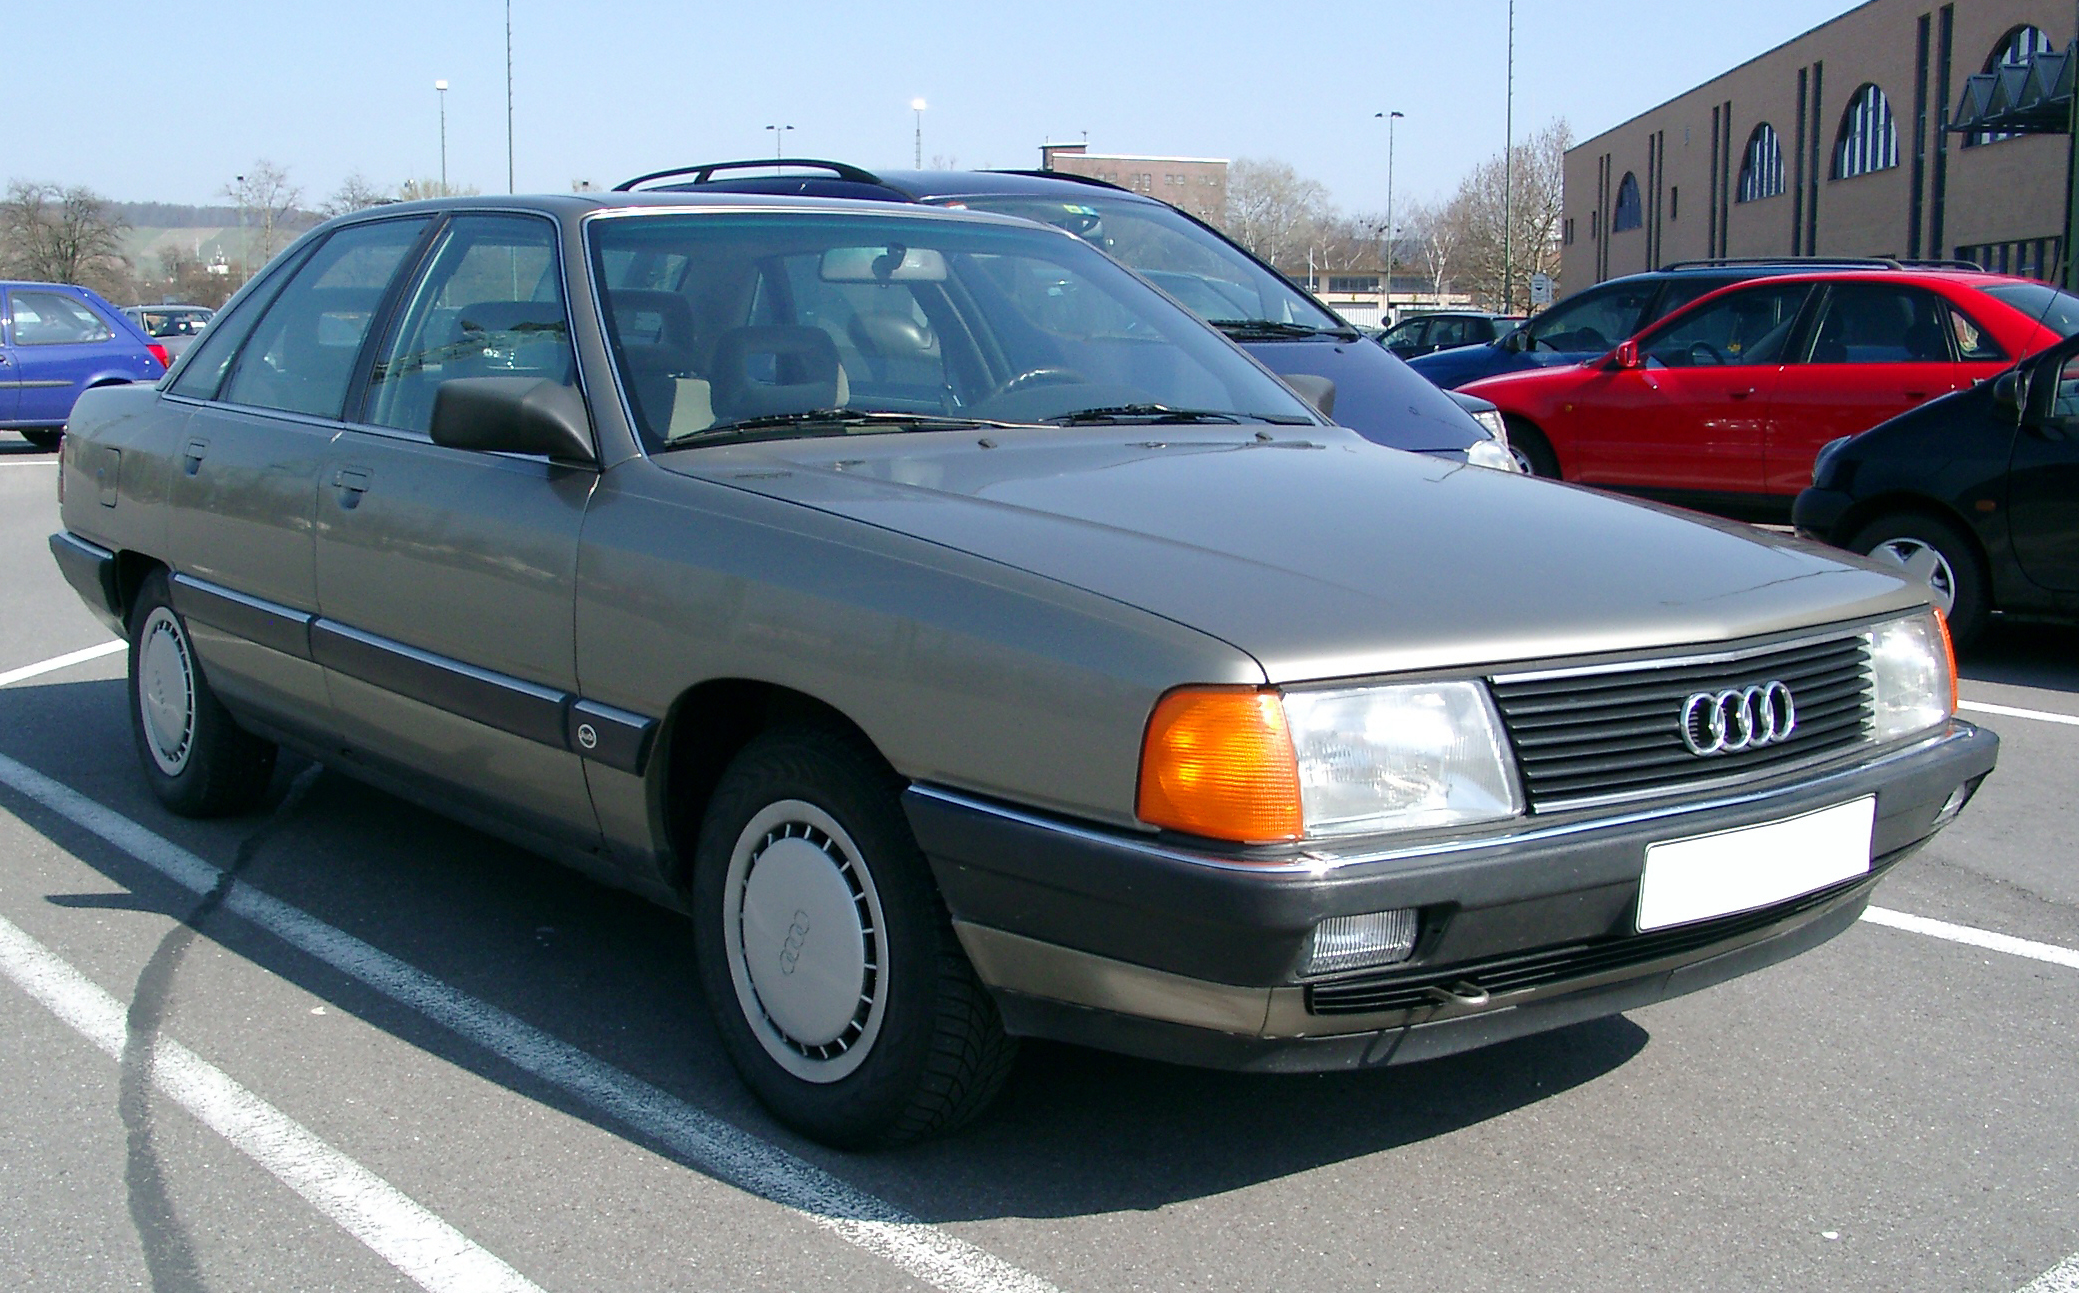 File:Audi 100 C3 front 20070326.jpg - Wikimedia Commons